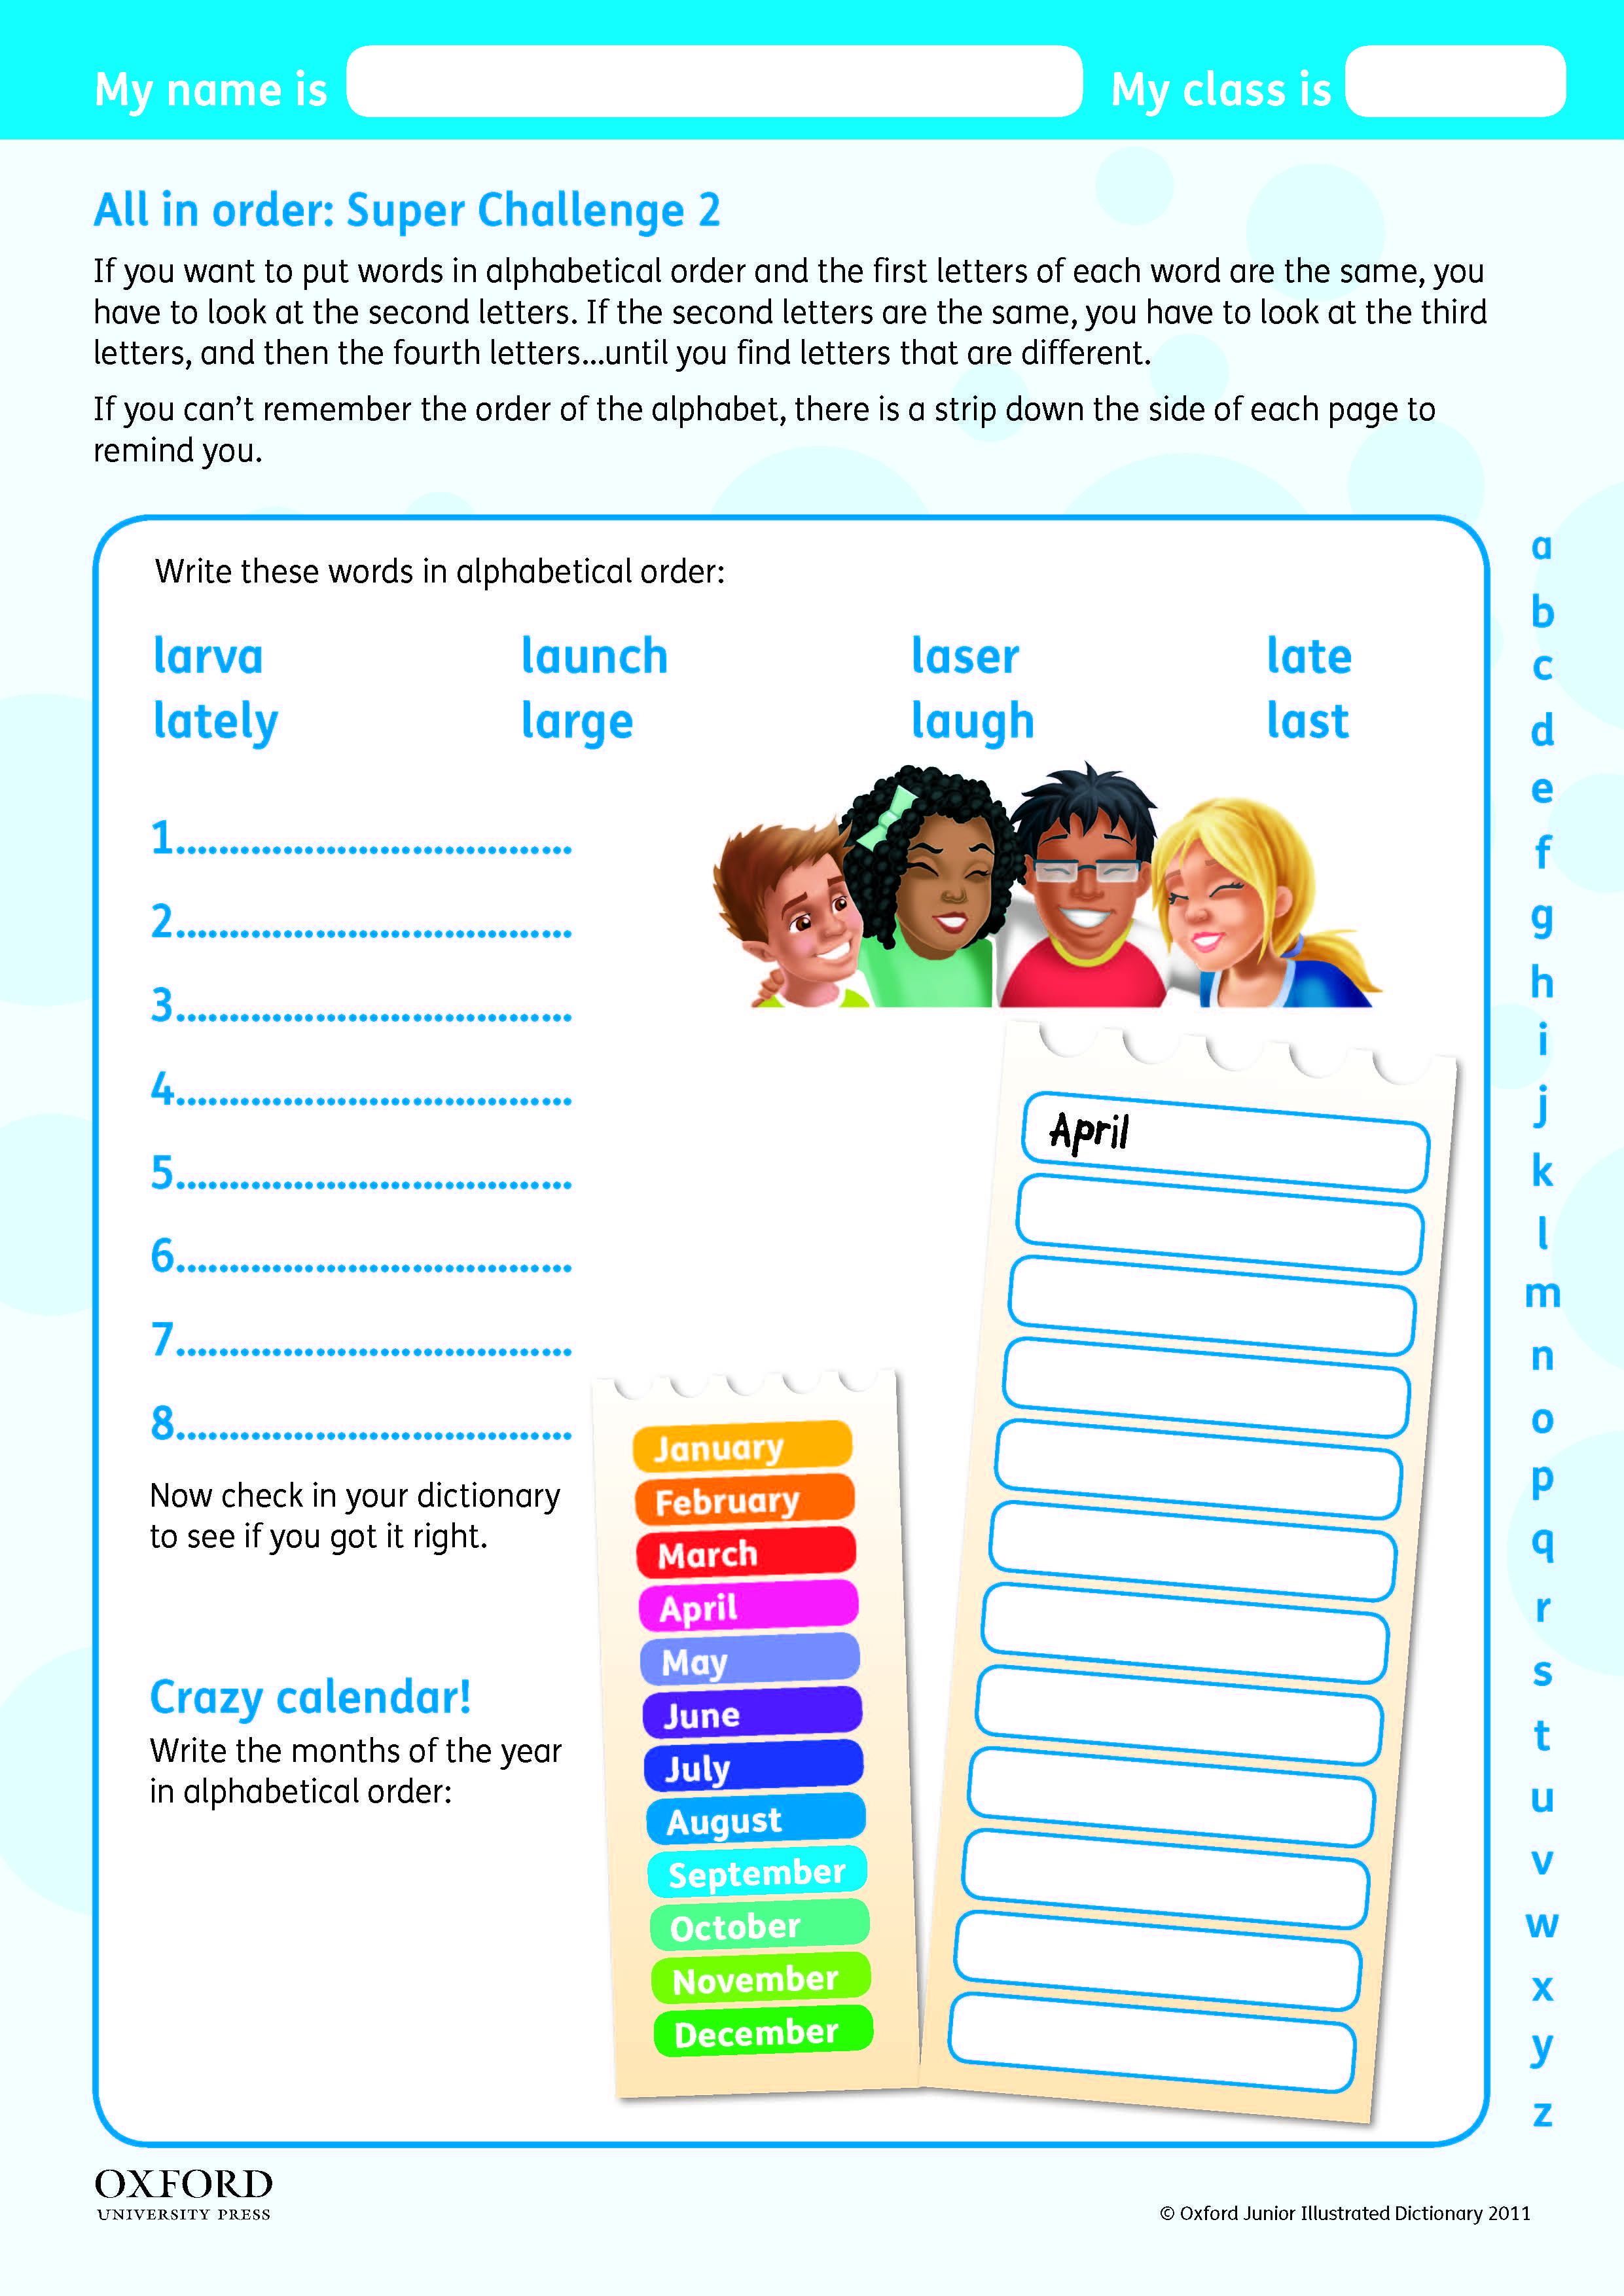 medium resolution of Download your free Oxford Primary Dictionary Super Challenge worksheet.  Teach children about guide words in the diction…   Guide words